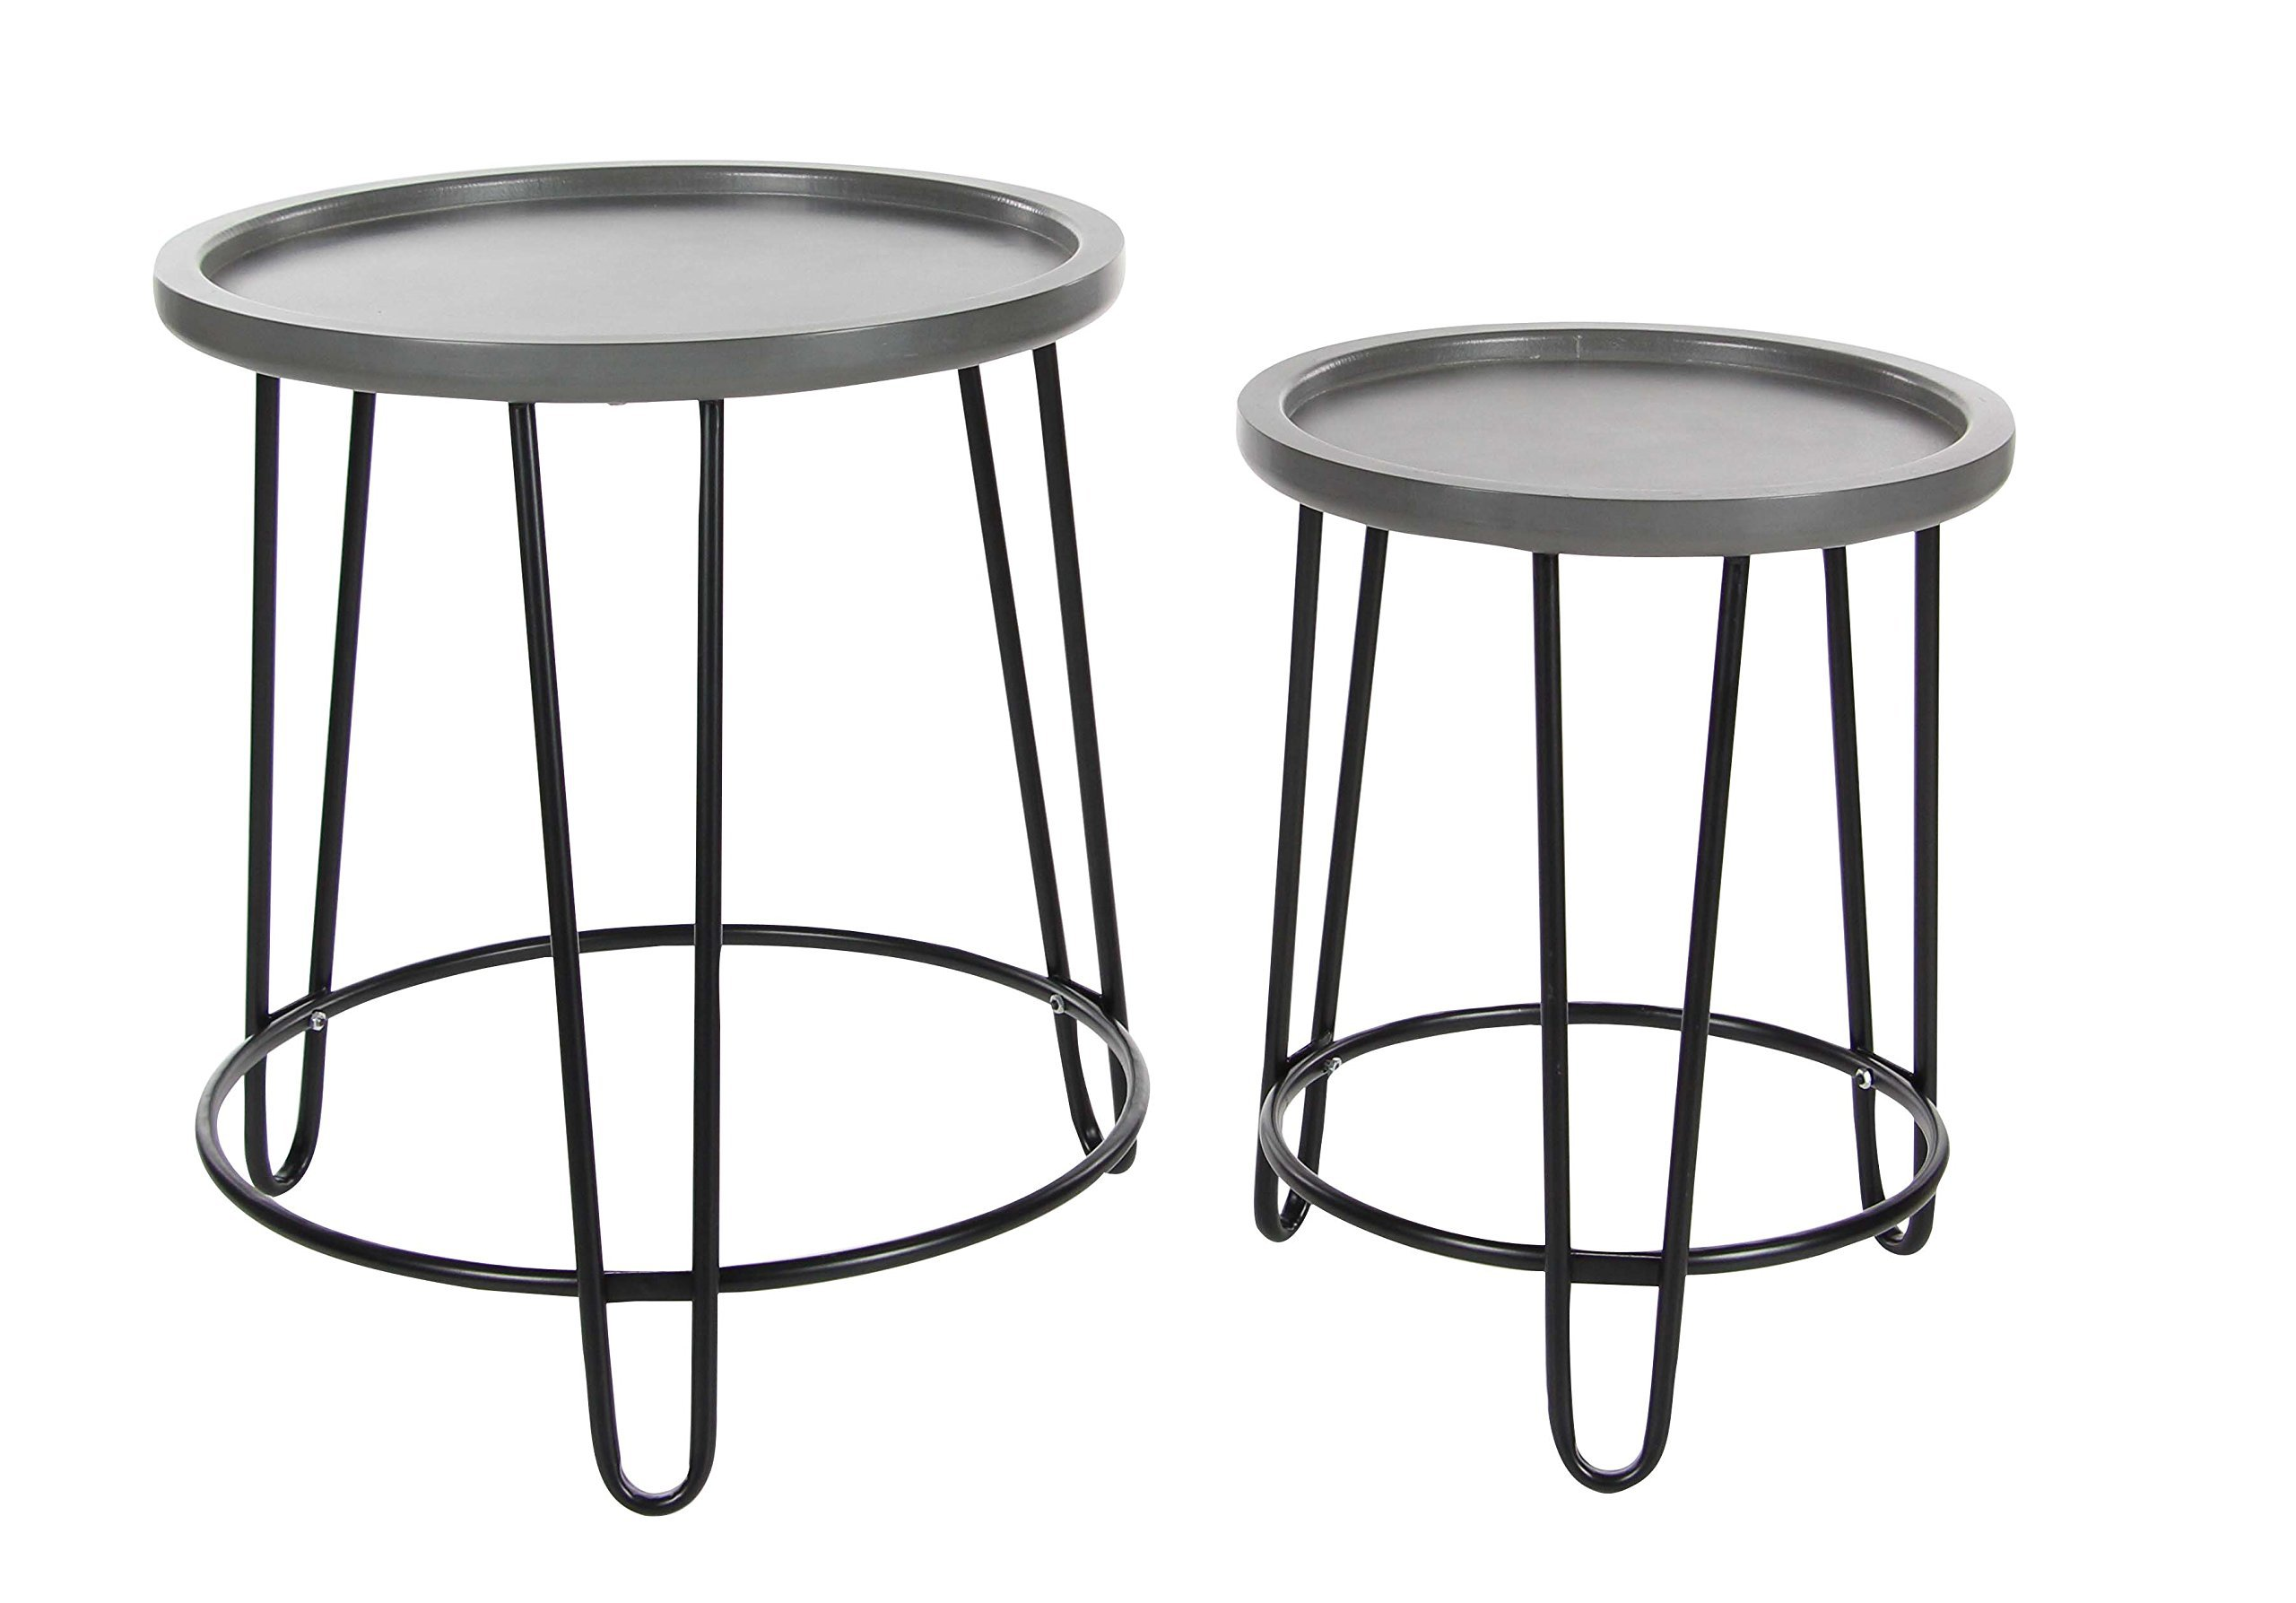 Deco 79 60172 Metal and Wood Accent Table Set of 2, 19'' H, 22'' H, Gray/Black